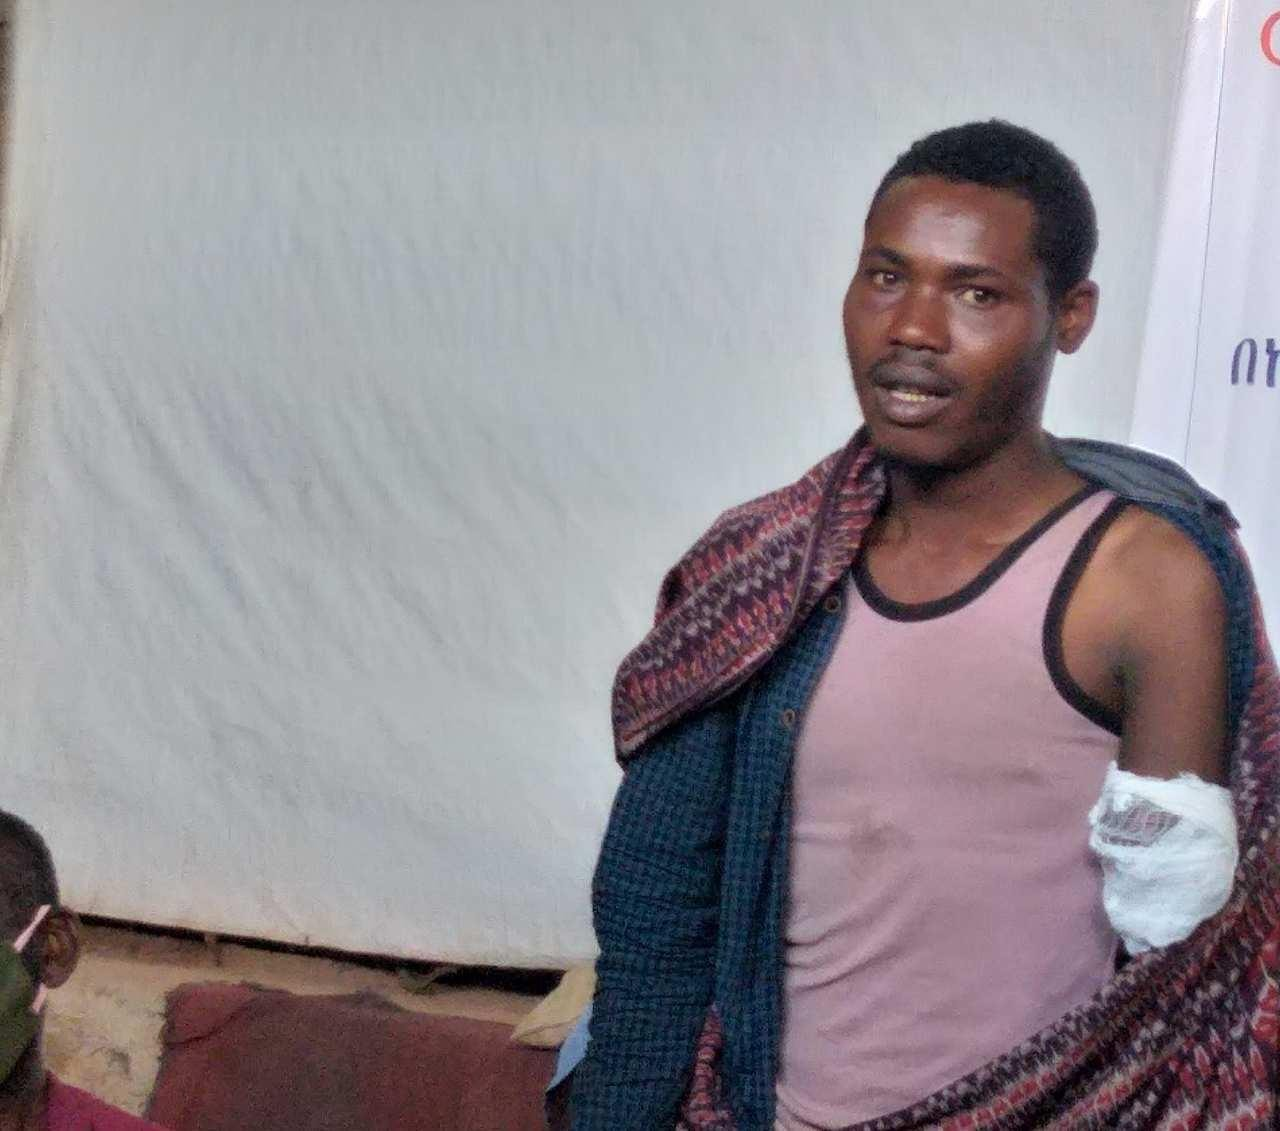 ETHIOPIA | NOV. 16, 2020 — Christian Loses Hand in Beating